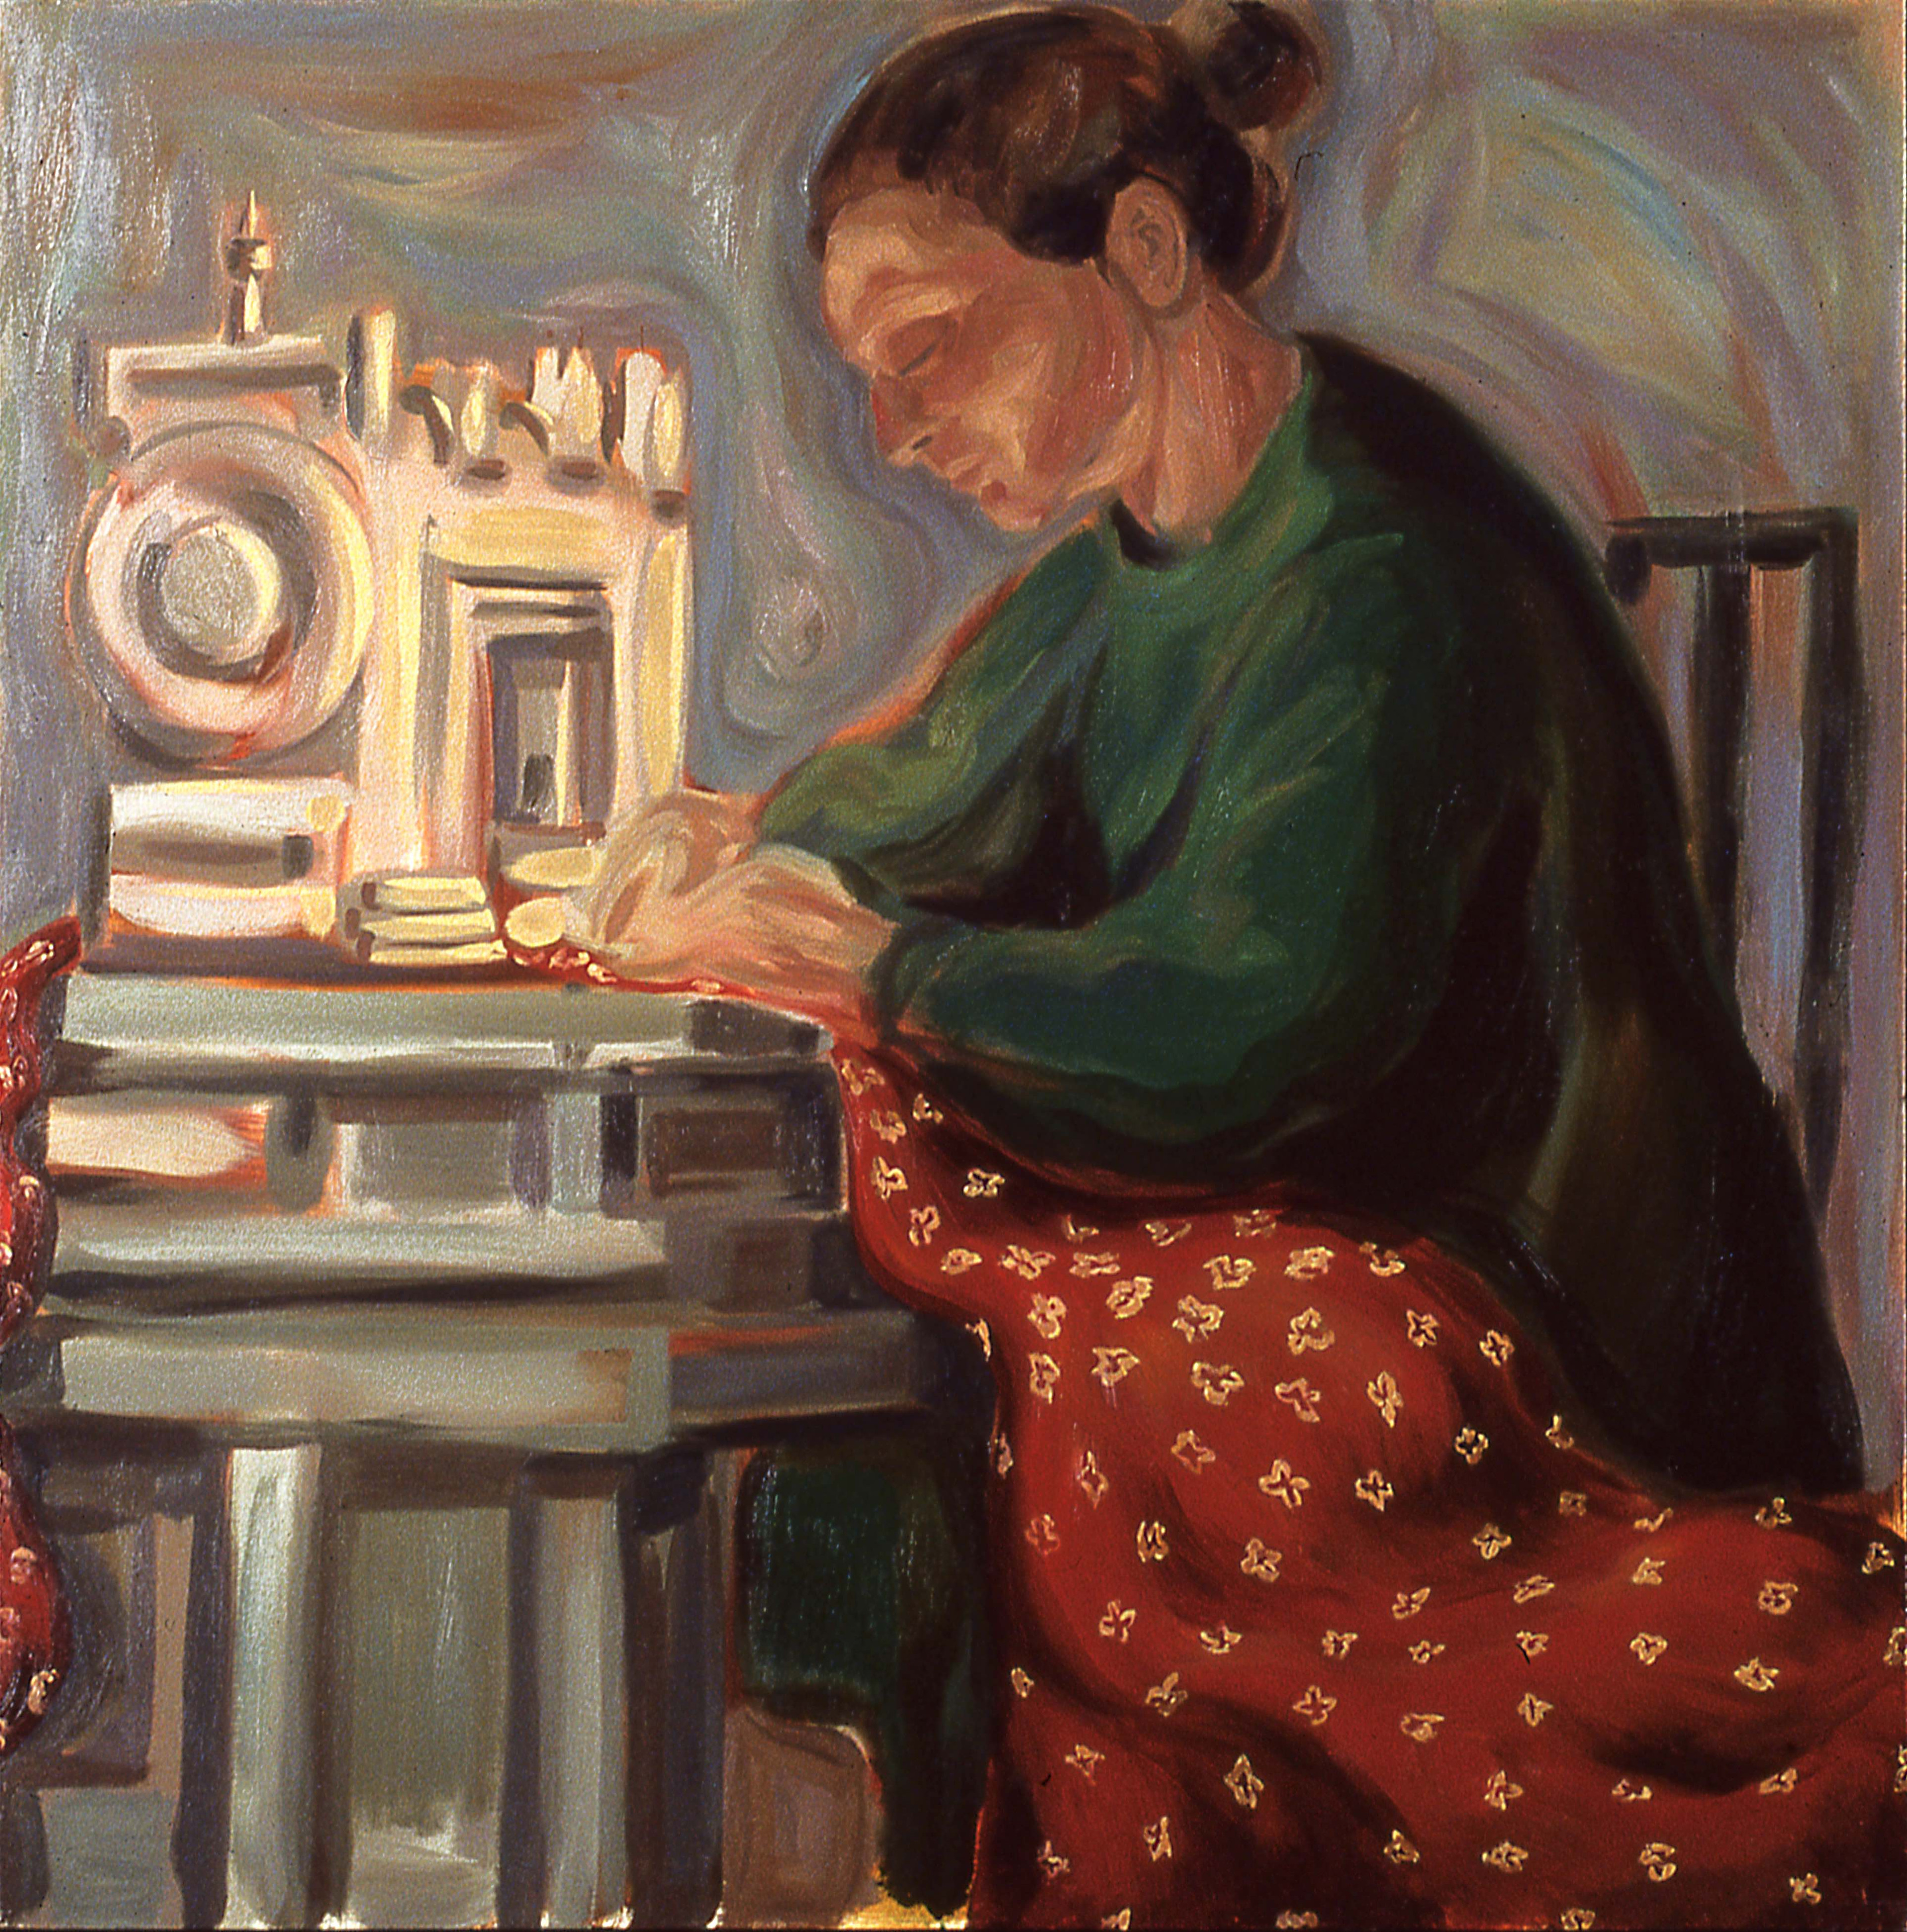 WORK IS THE CONDITION FOR EQUALITY #3, painted by Vince Mancuso in 1991, oil on canvas 4x5 feet